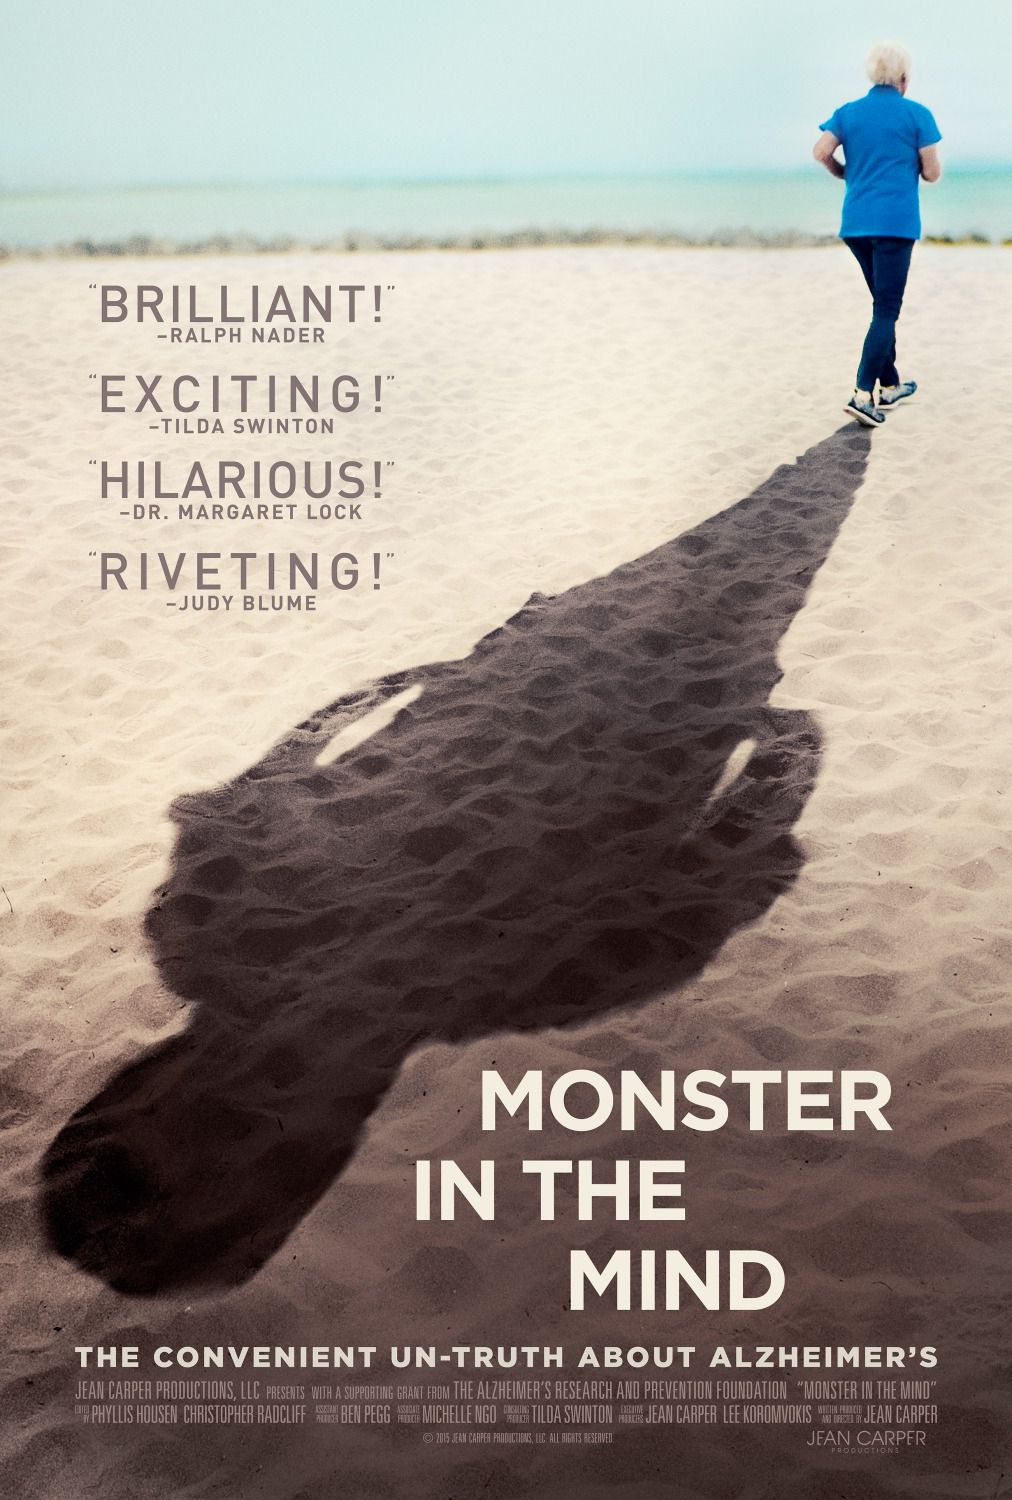 Monster in the Mind - The convenient untruth about Alzheimer - film poster